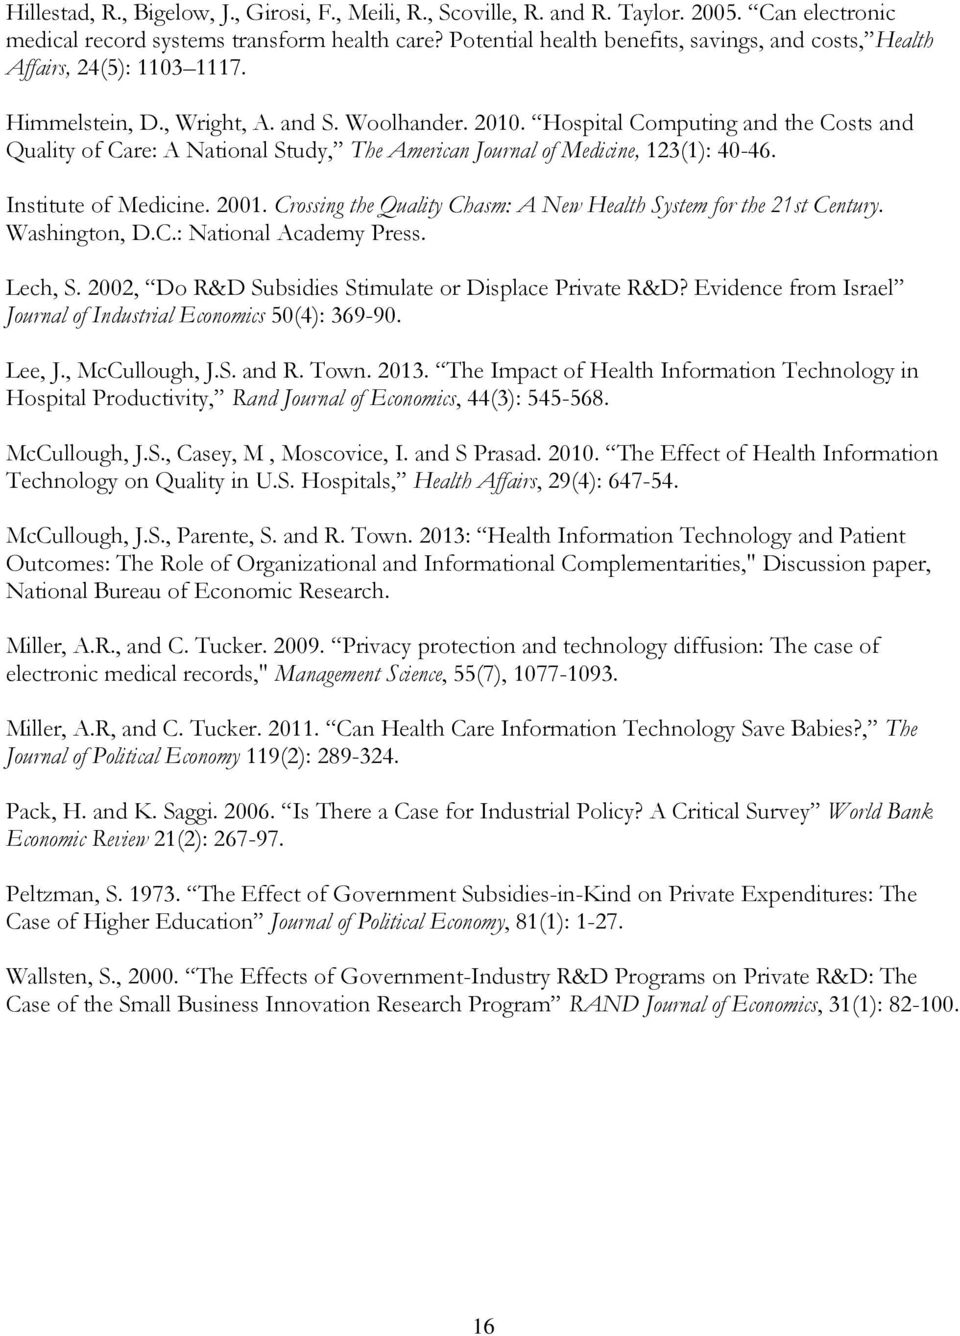 Hospital Computing and the Costs and Quality of Care: A National Study, The American Journal of Medicine, 123(1): 40-46. Institute of Medicine. 2001.